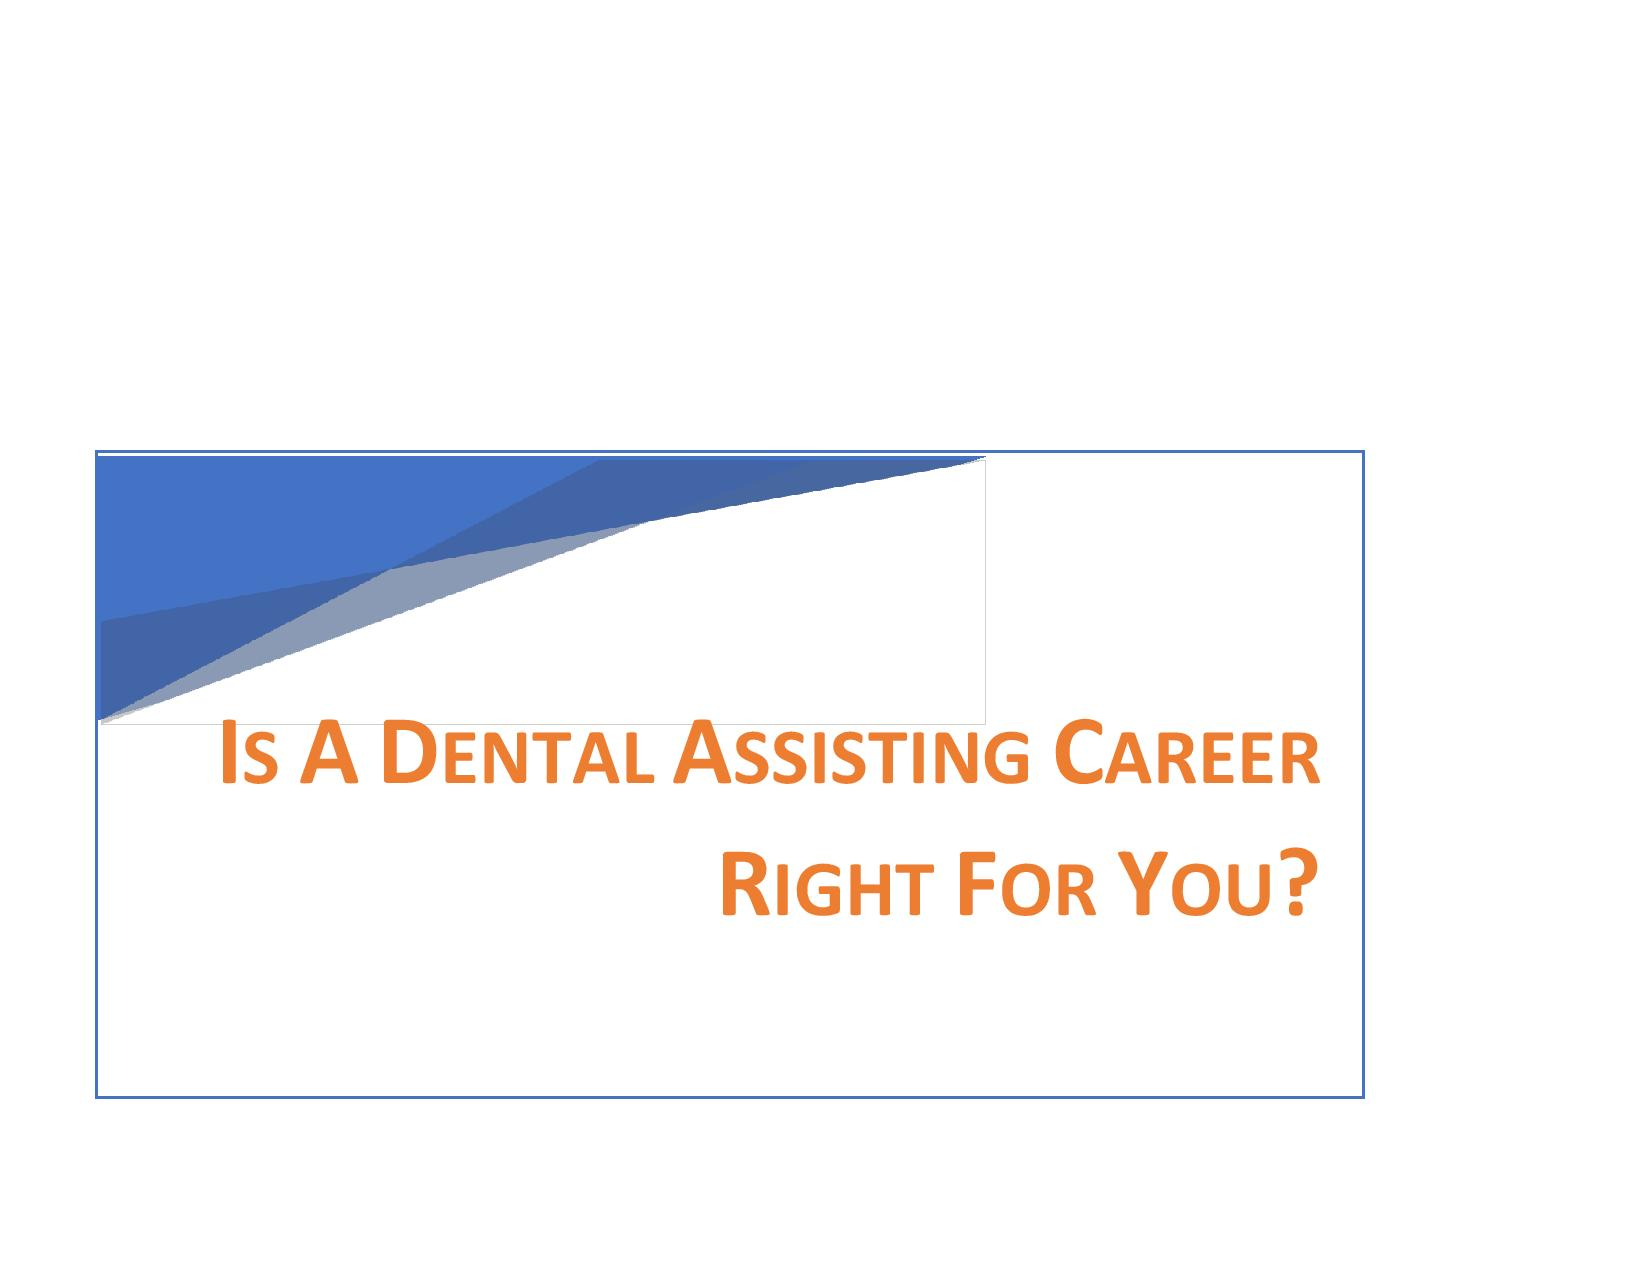 Is A Dental Assisting Career Right For You?